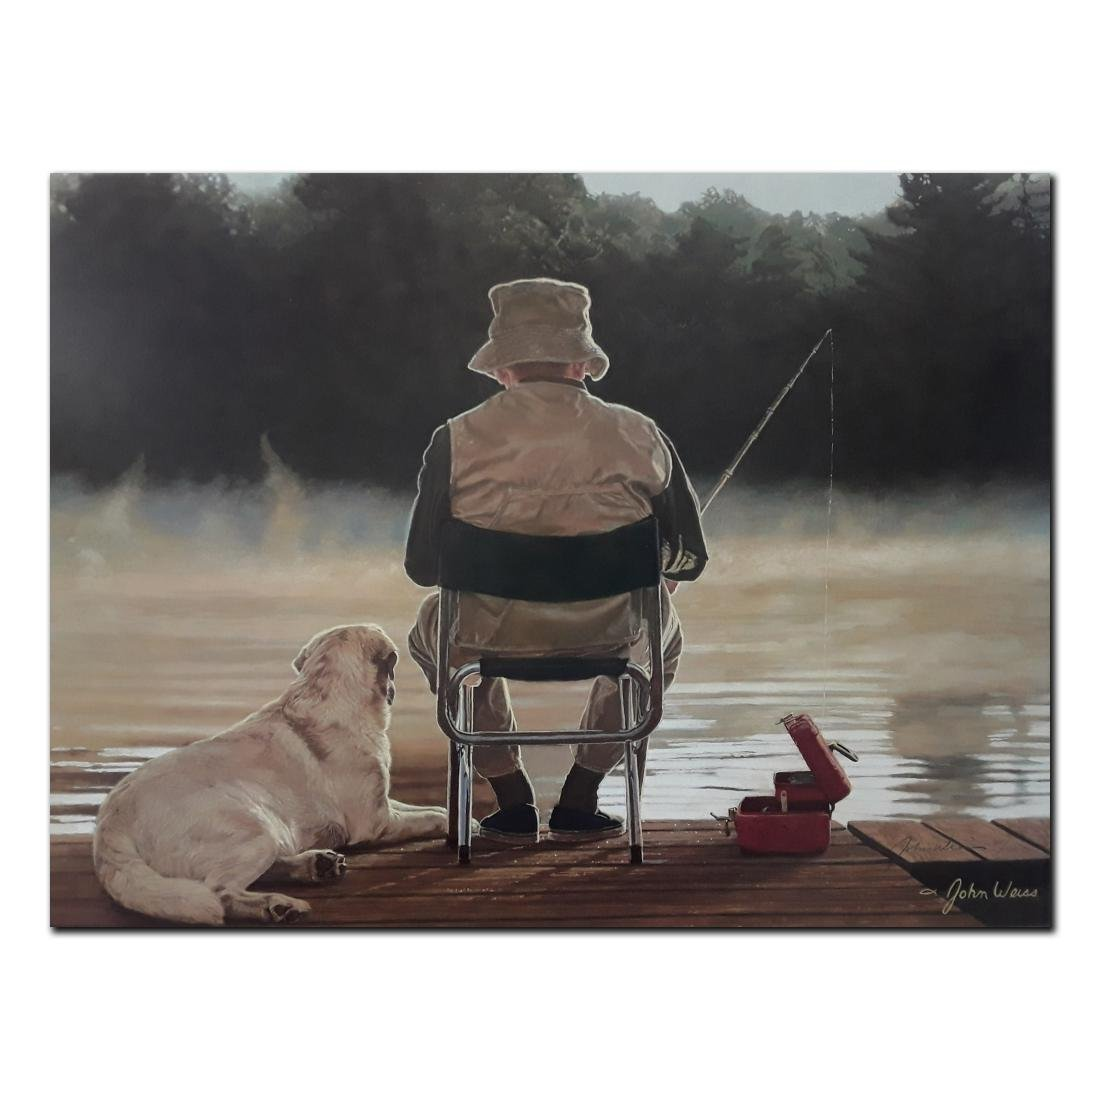 """John Weiss' """"Making Memories"""" limited edition print"""